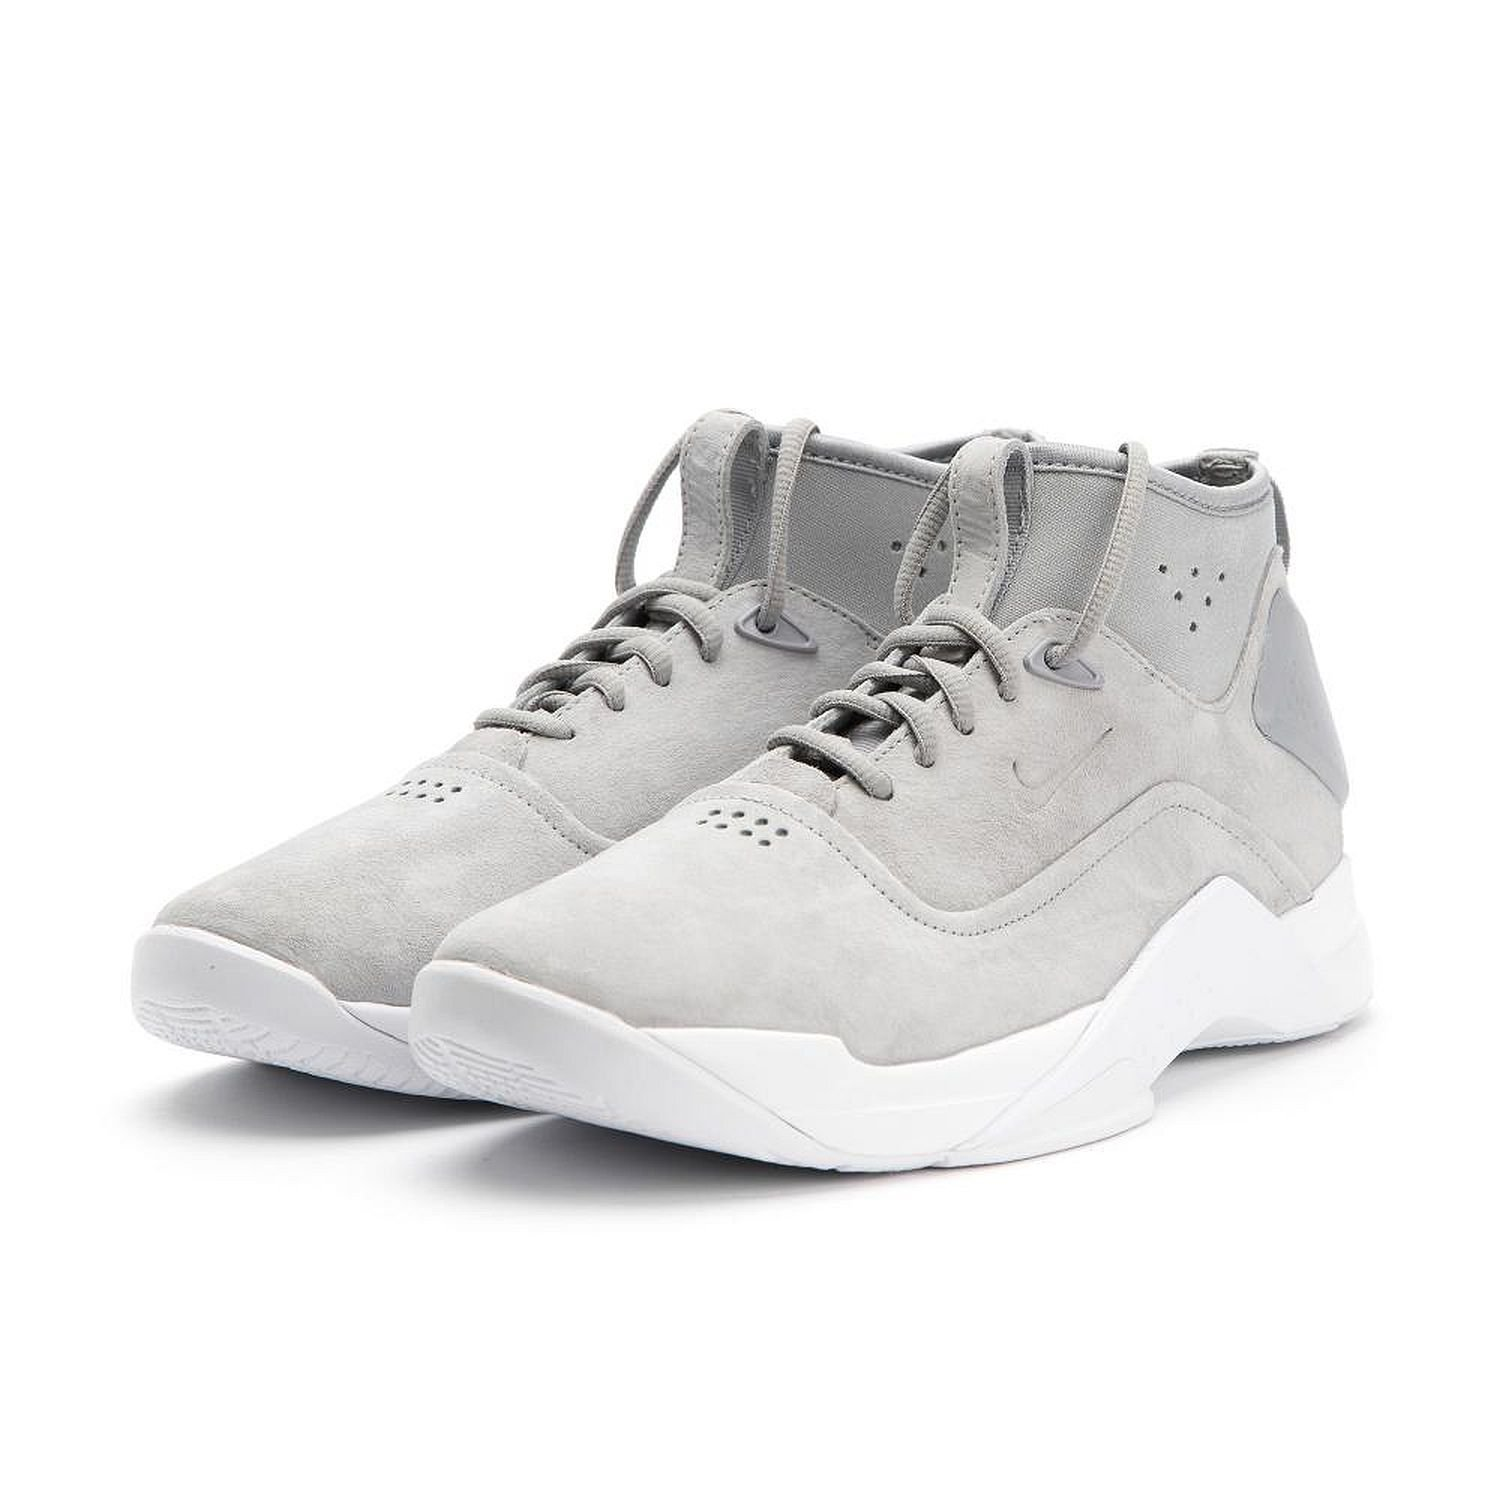 aaeafca8a71 Galleon - NIKE Men s Hyperdunk Low Crft Wolf Grey Wolf Grey White  Basketball Shoe 11.5 Men US